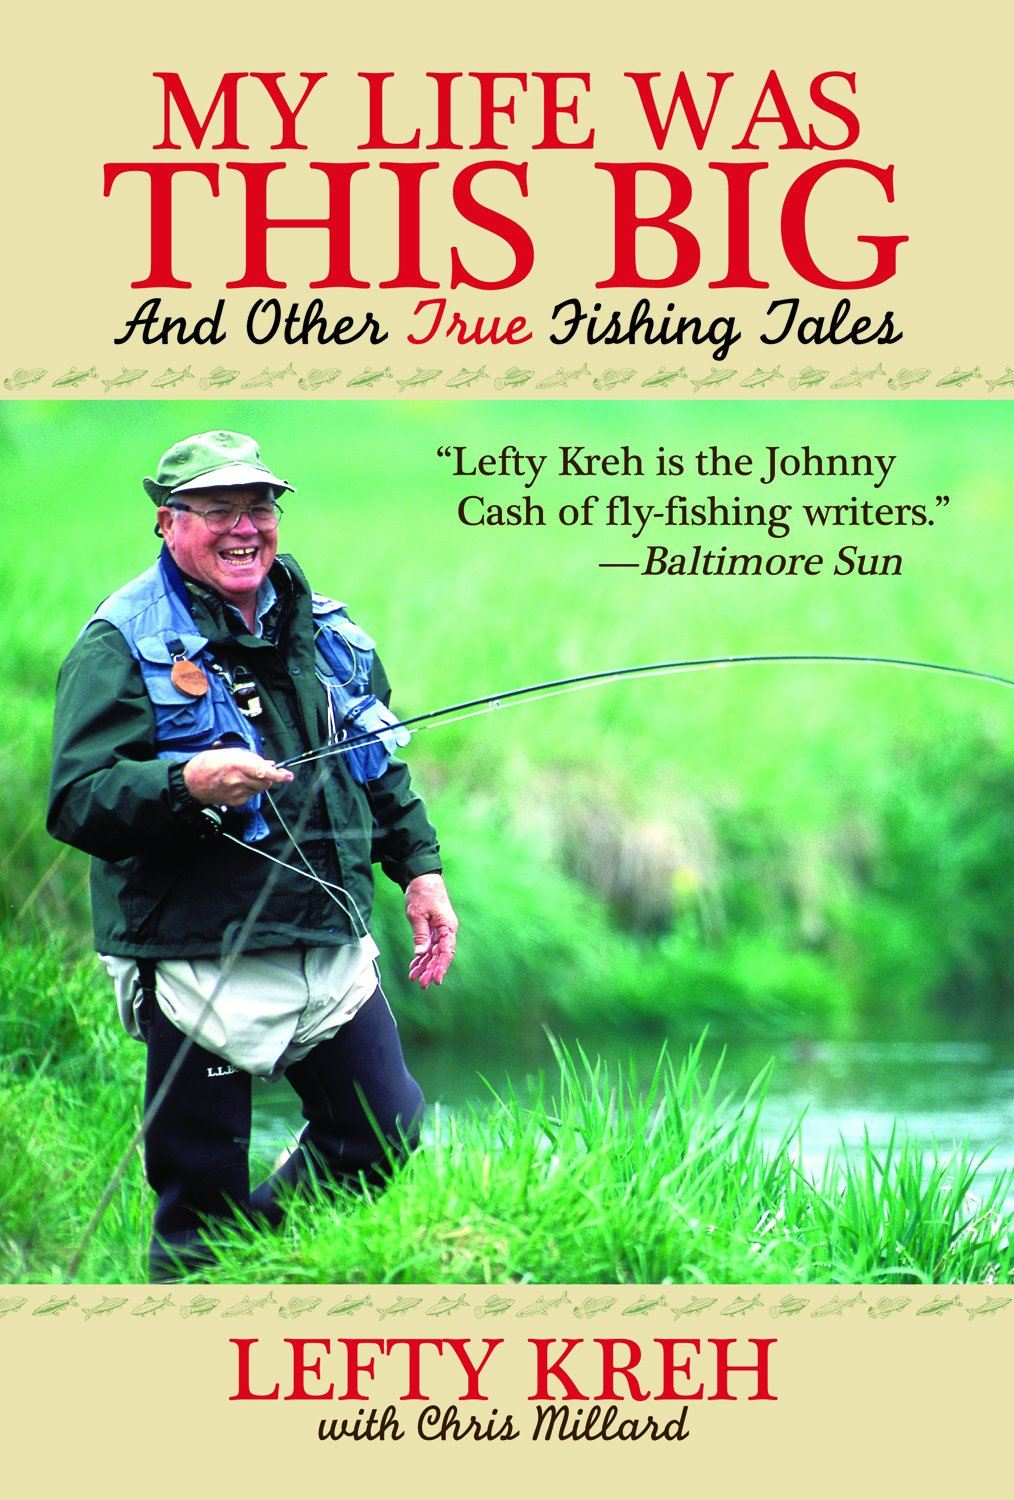 My Life Was This Big: And Other True Fishing Tales By: Lefty Kreh, Chris Millard